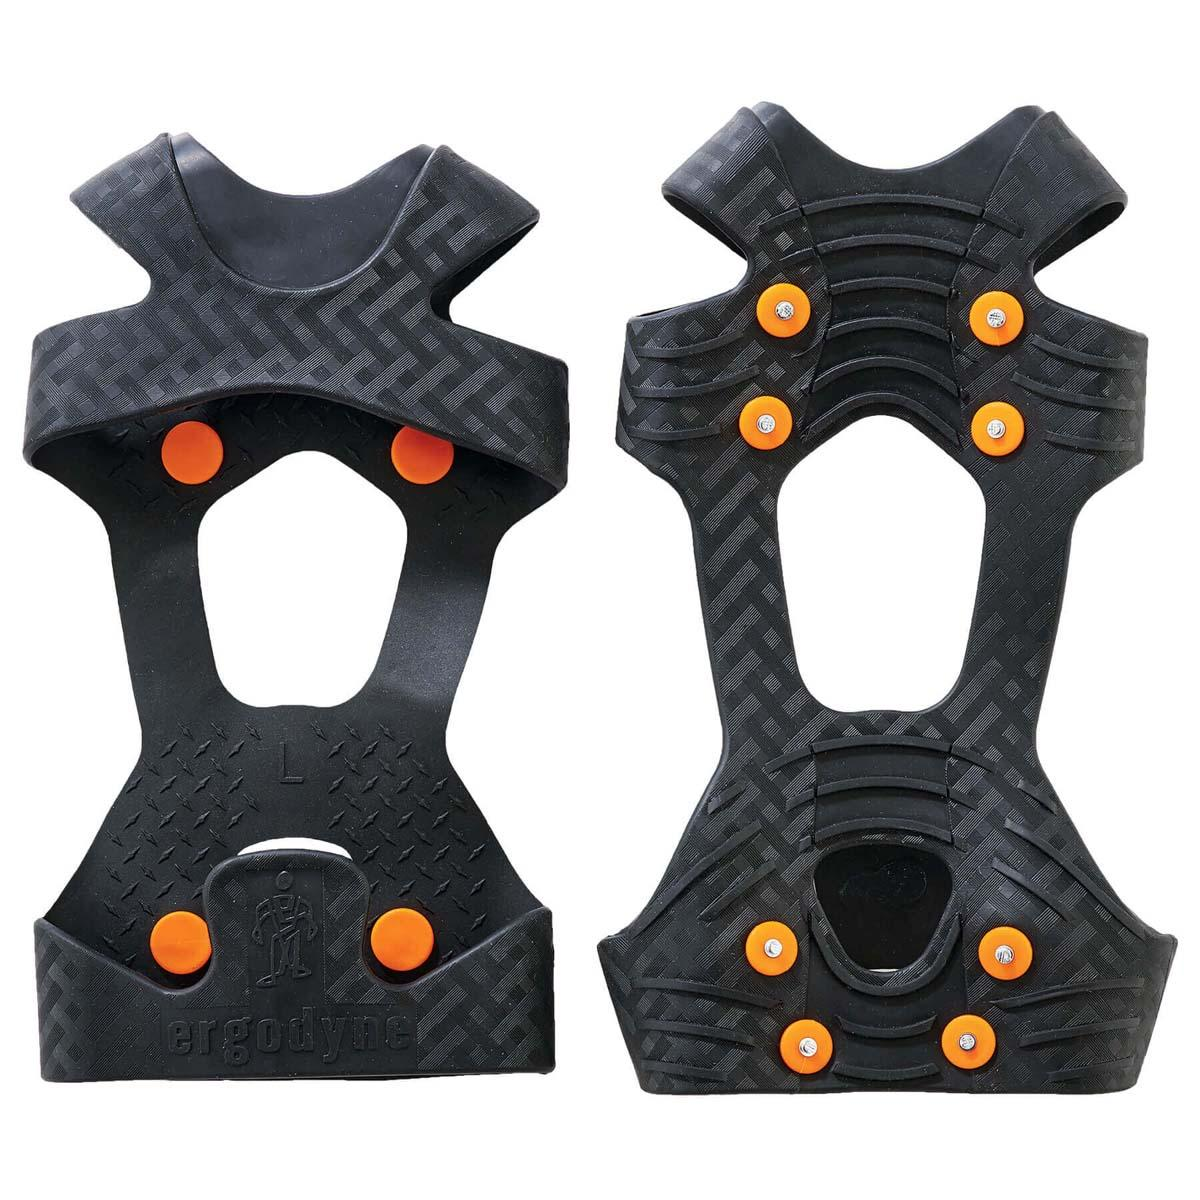 6300 2XL Black One Piece Ice Traction Device